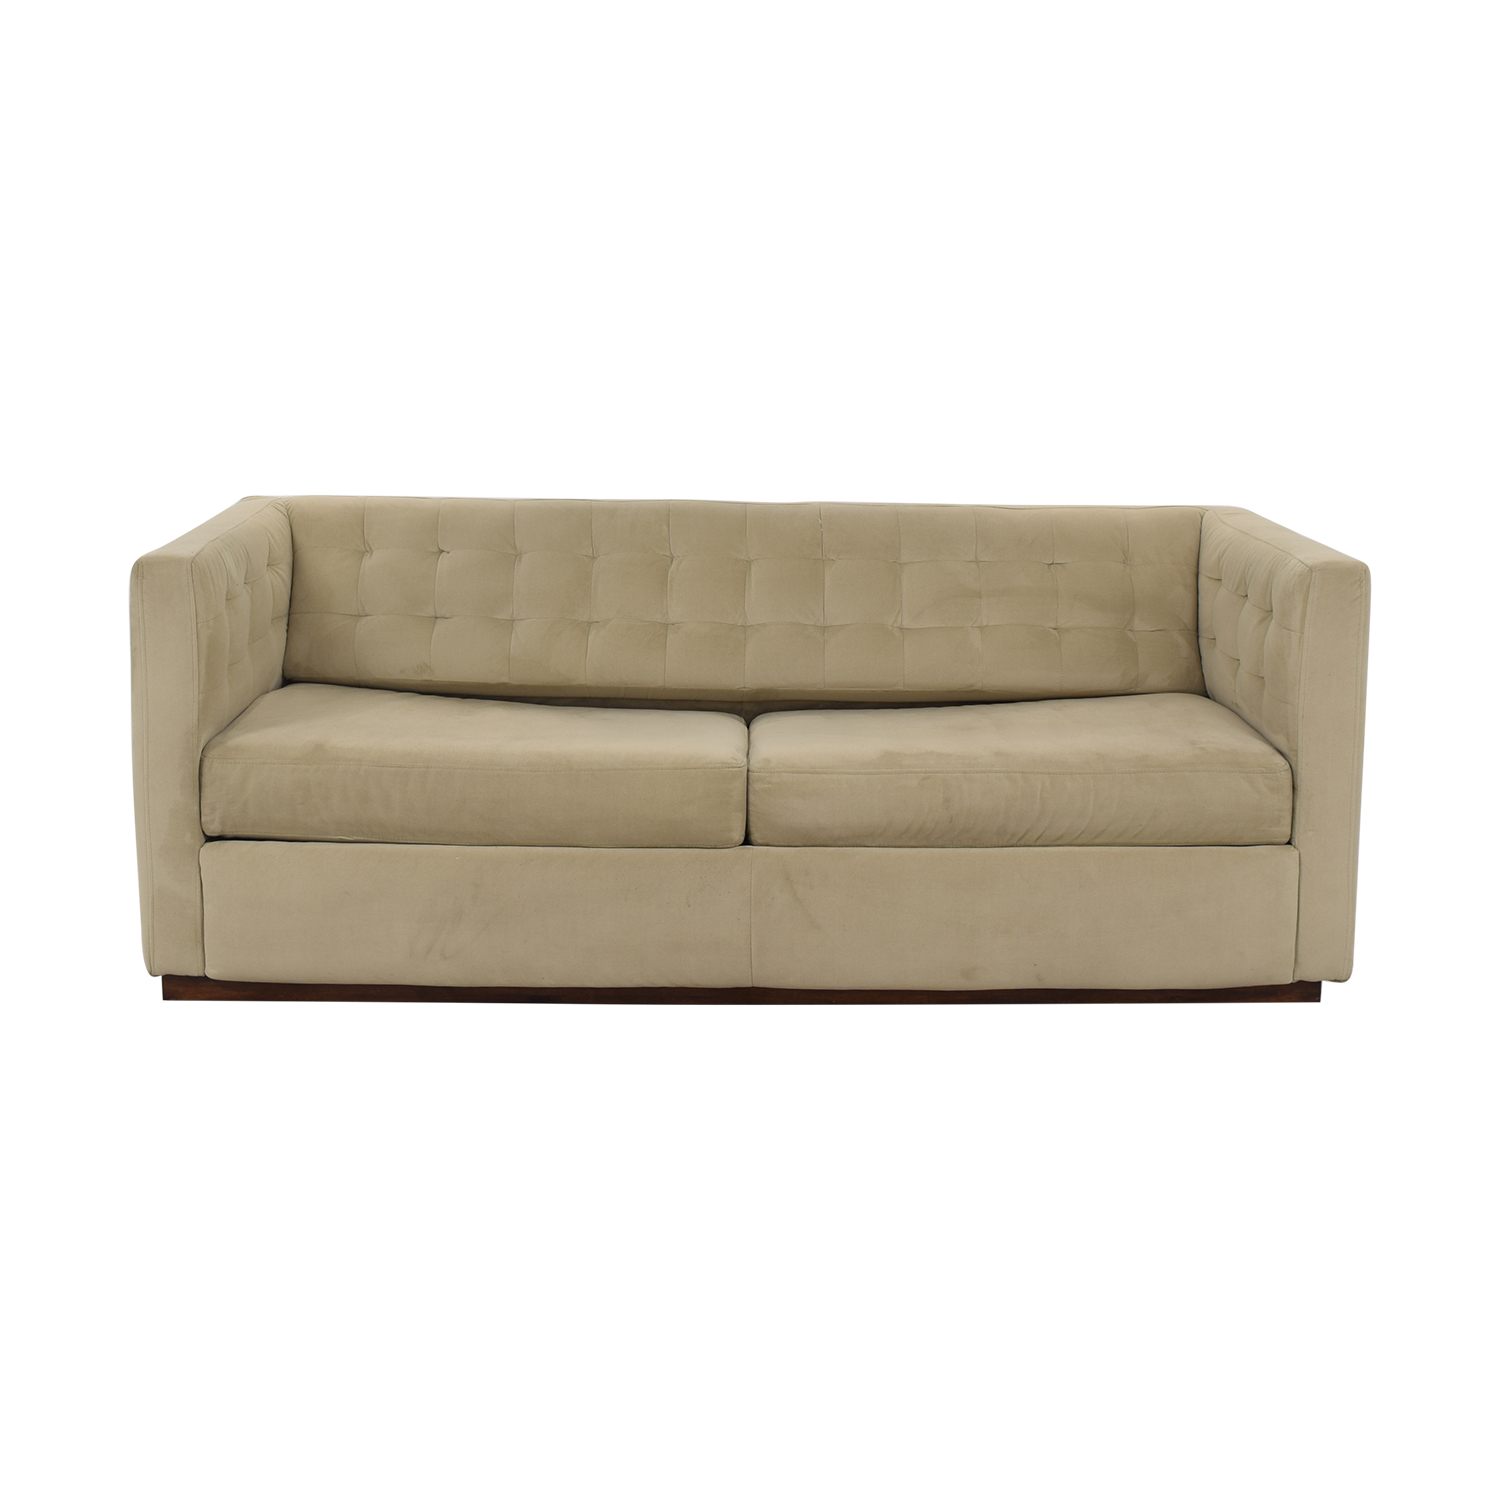 West Elm West Elm Rochester Deluxe Queen Sleeper Sofa coupon